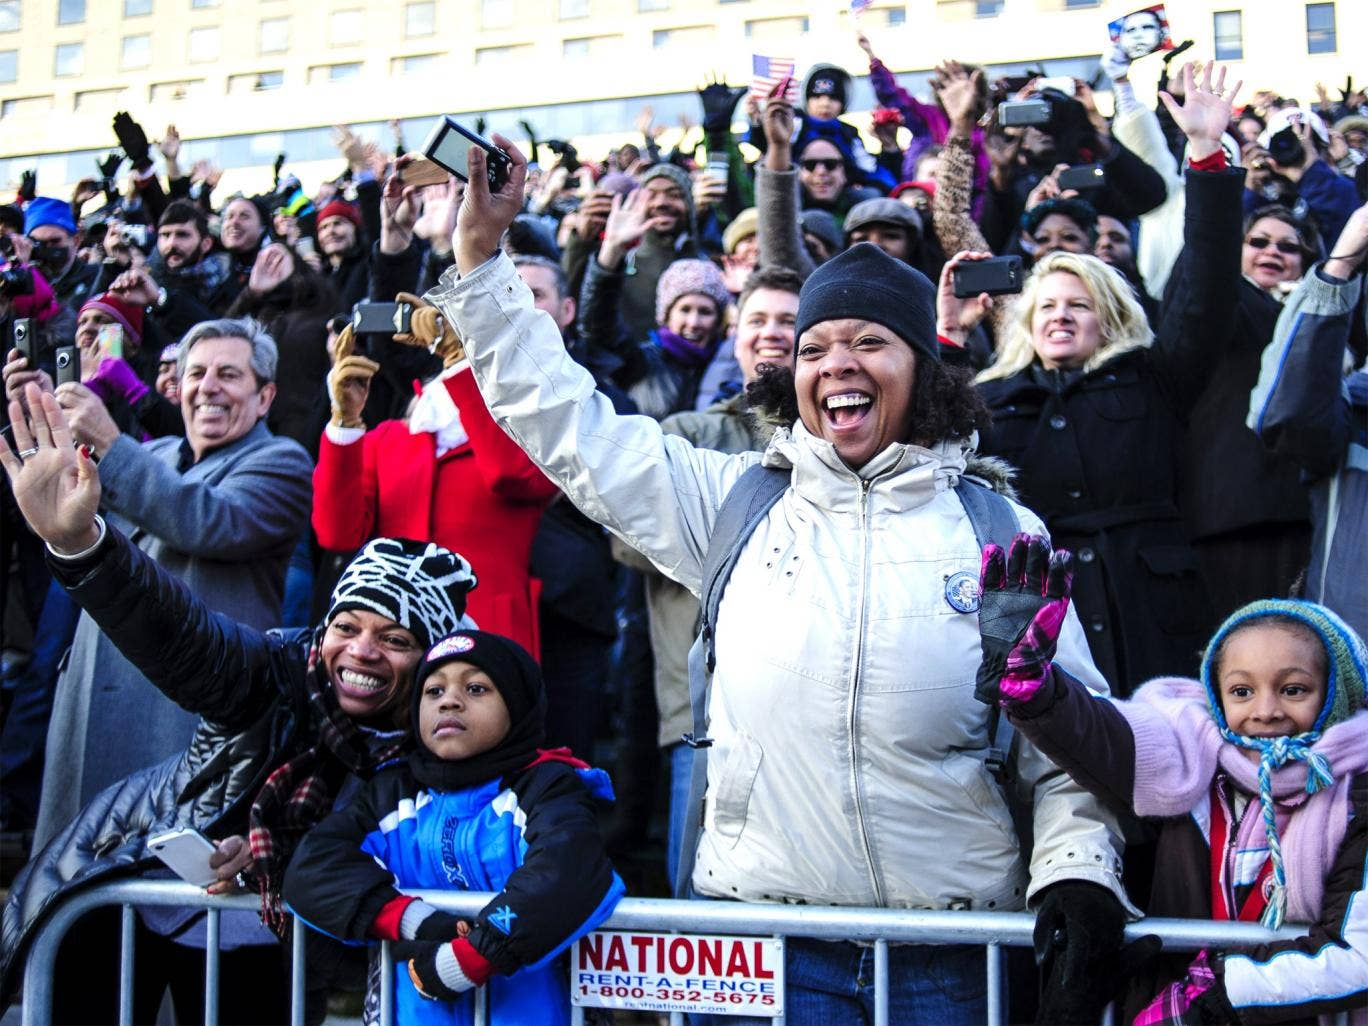 Spectators wave to President Barack Obama as the inaugural parade moves down Pennsylvainia Avenue